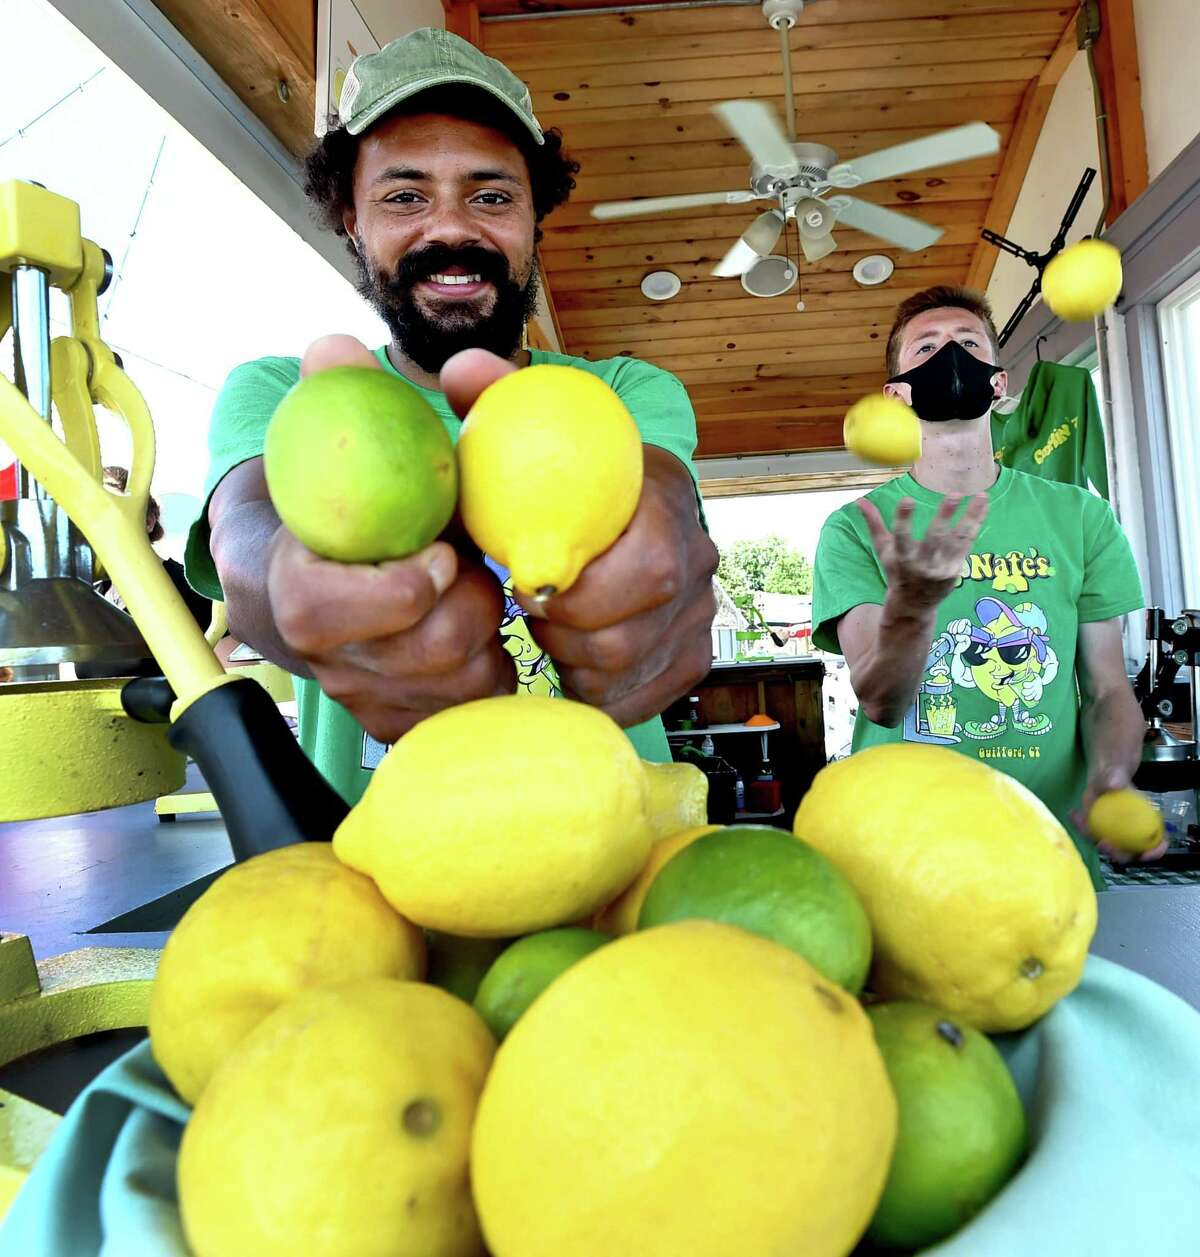 Nate Bryant, owner of LemonNates lemonade and limeade, stands on the dock at the Guilford Mooring restaurant in Guilford, on Thursday, July 16. LemonNate's offers fresh squeezed lemonade and limeade. All drinks are individually made. At right is employee Sean Fitzgerald.